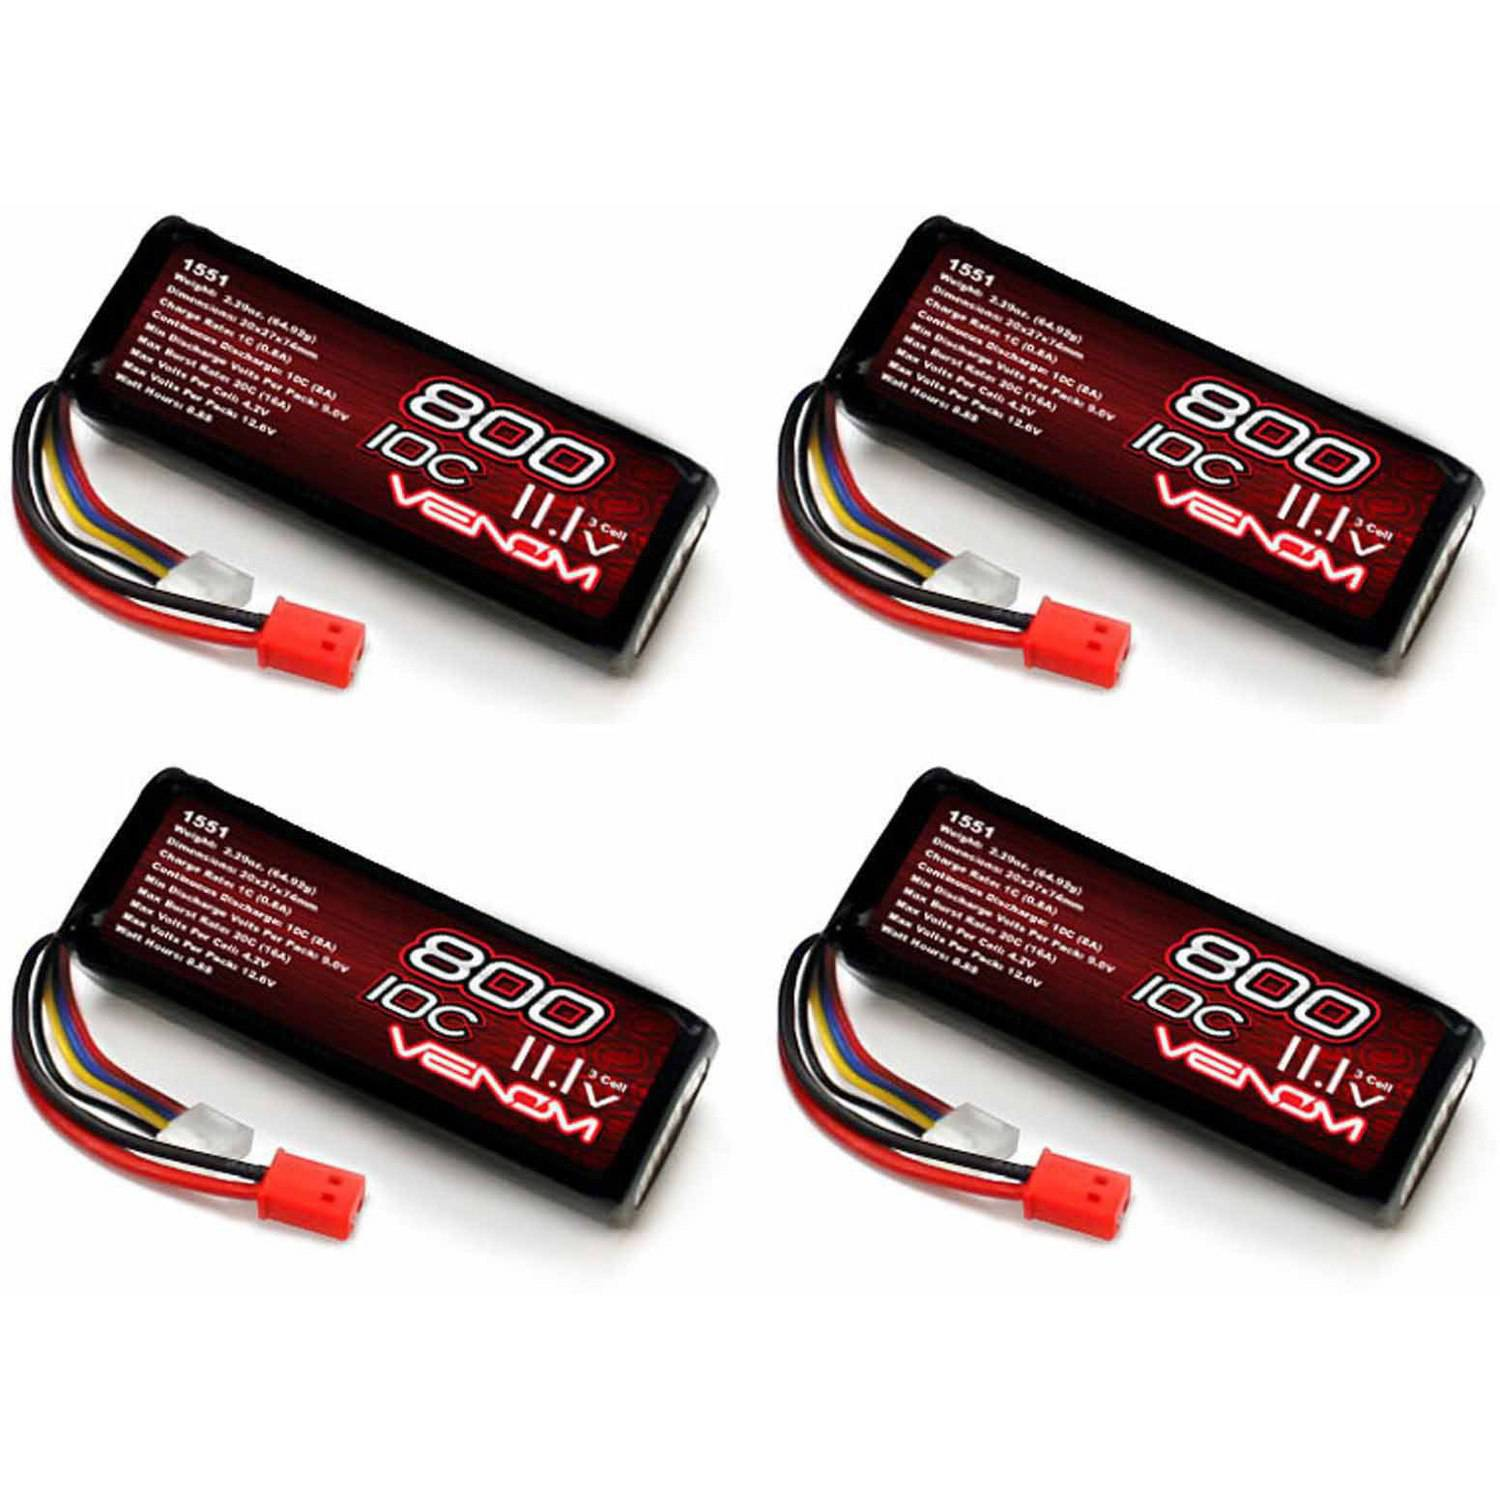 Venom 10C 3S 800mAh 11.1 LiPo Battery with Micro Molex Plug x4 Packs